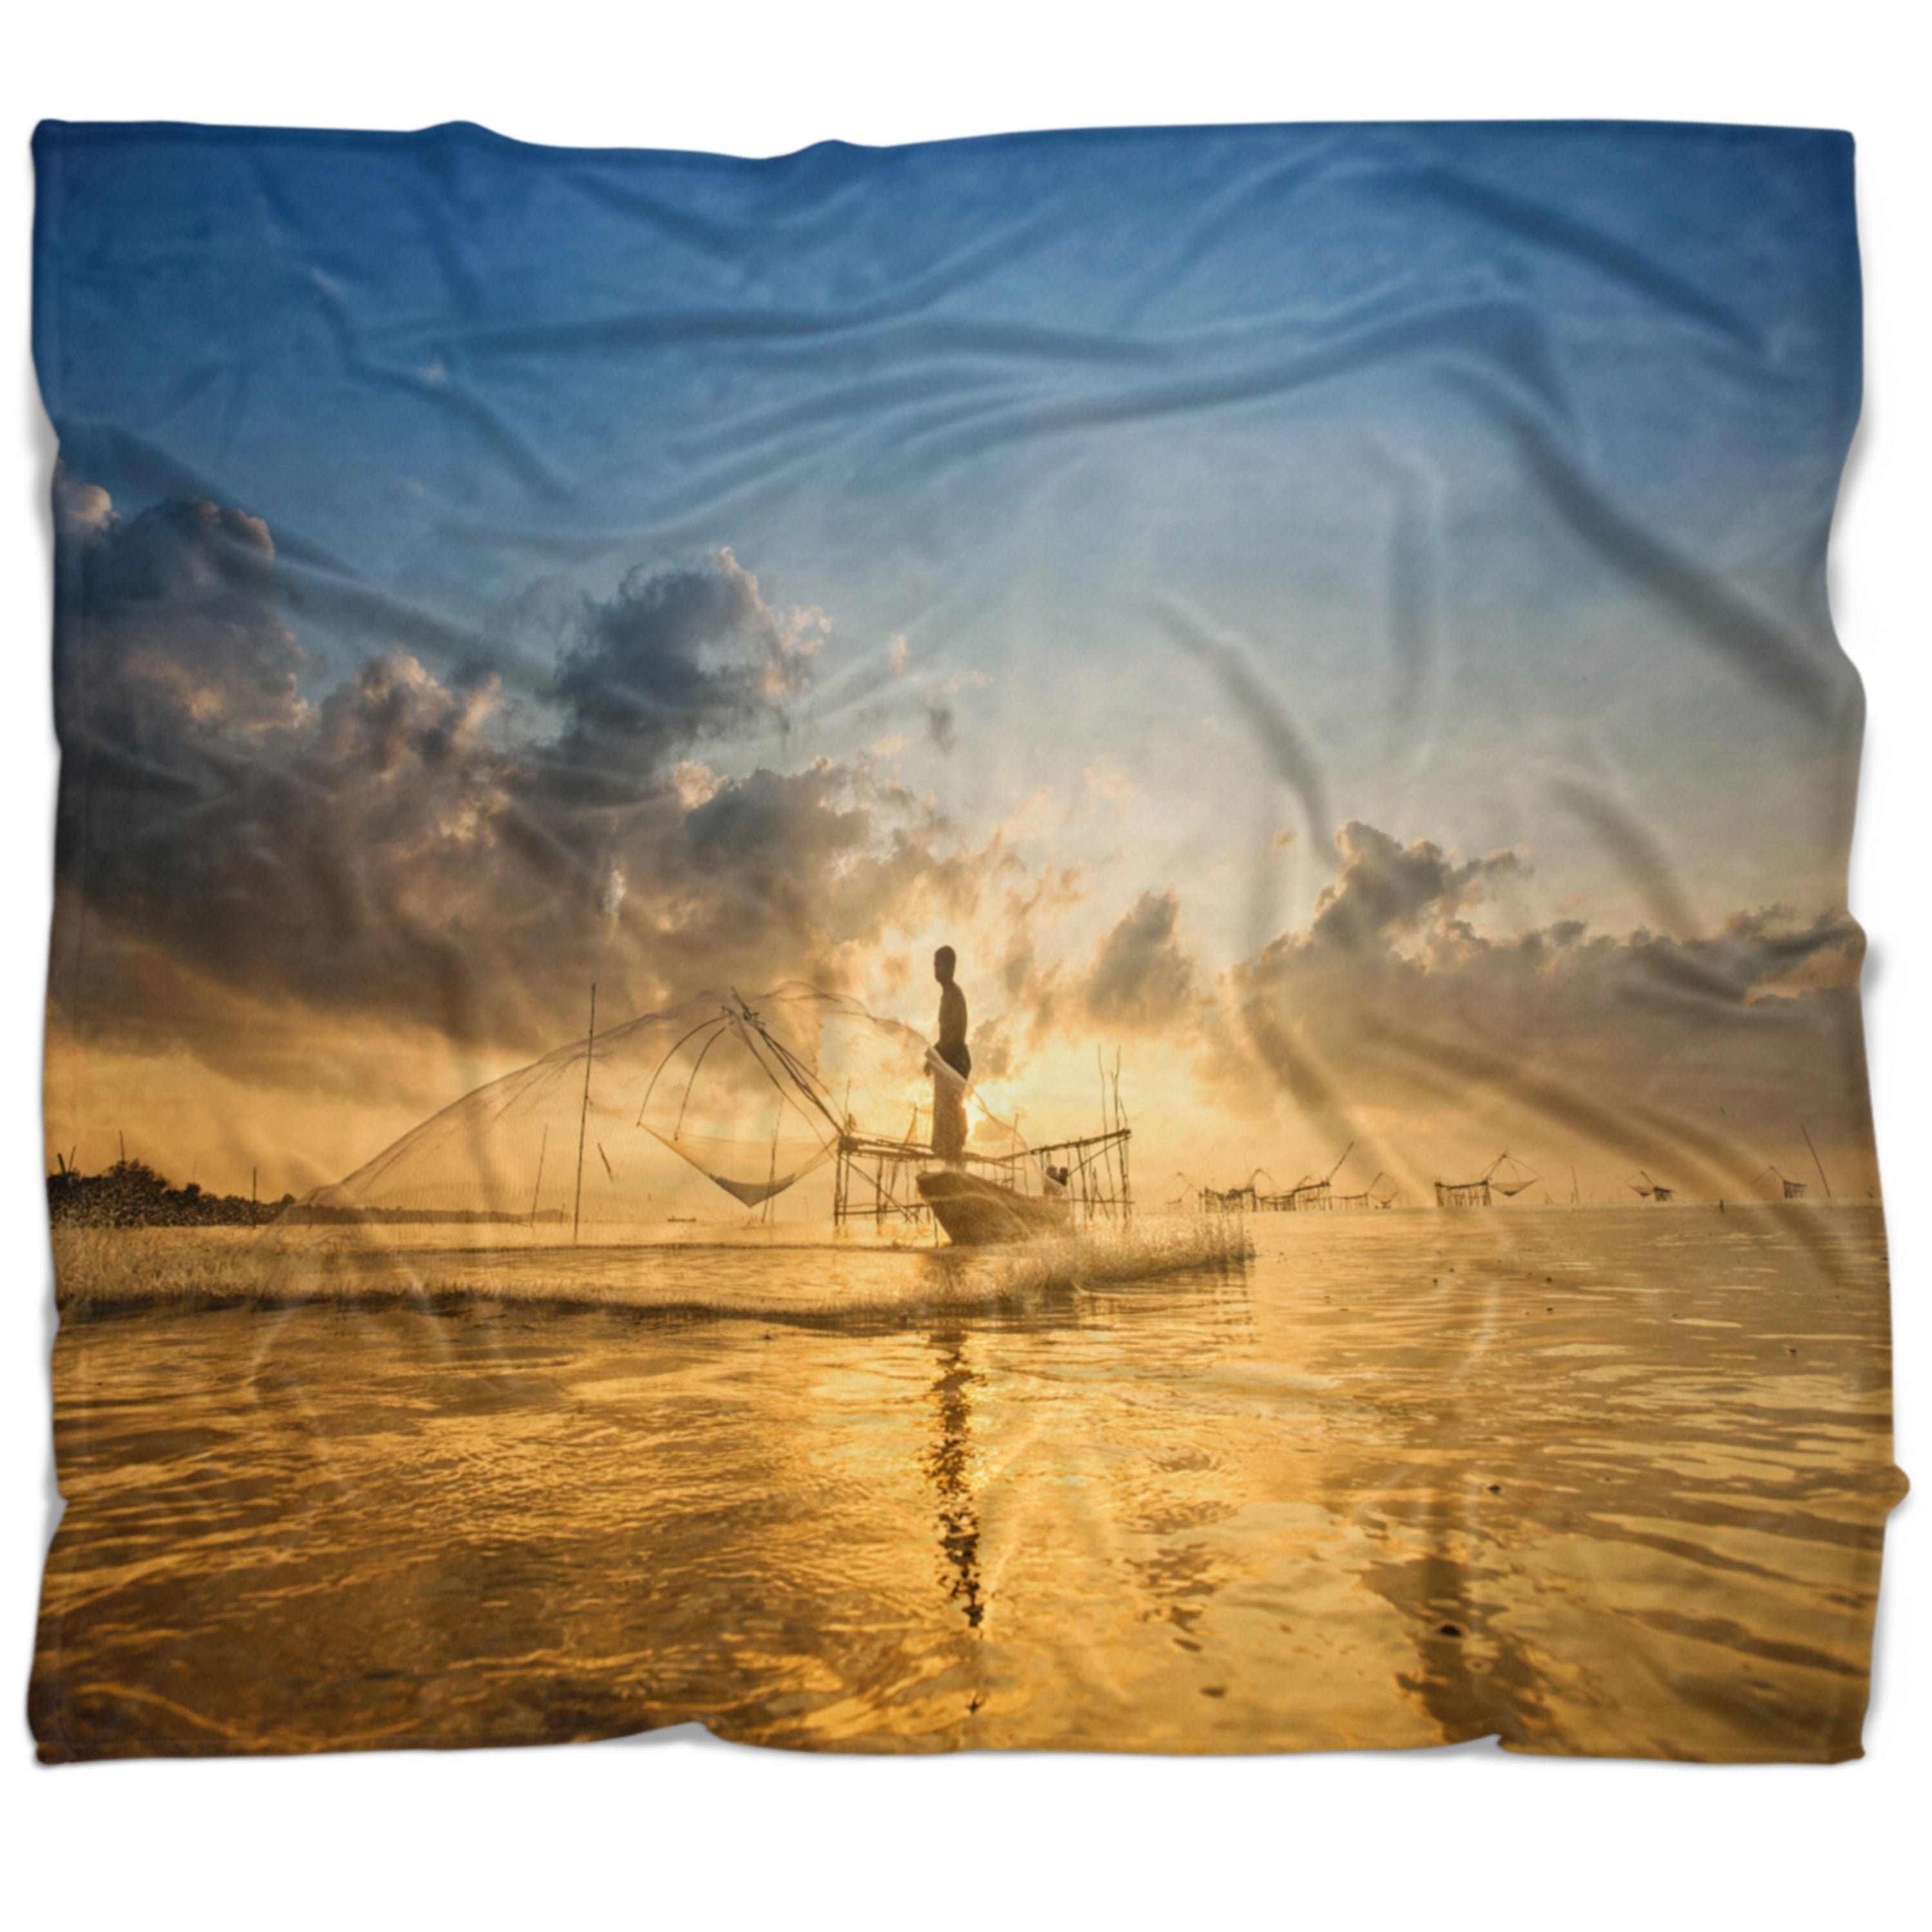 Designart Pakpra With Fisherman At Sunrise Landscape Fleece Throw Blanket On Sale Overstock 20922585 71 In X 59 In